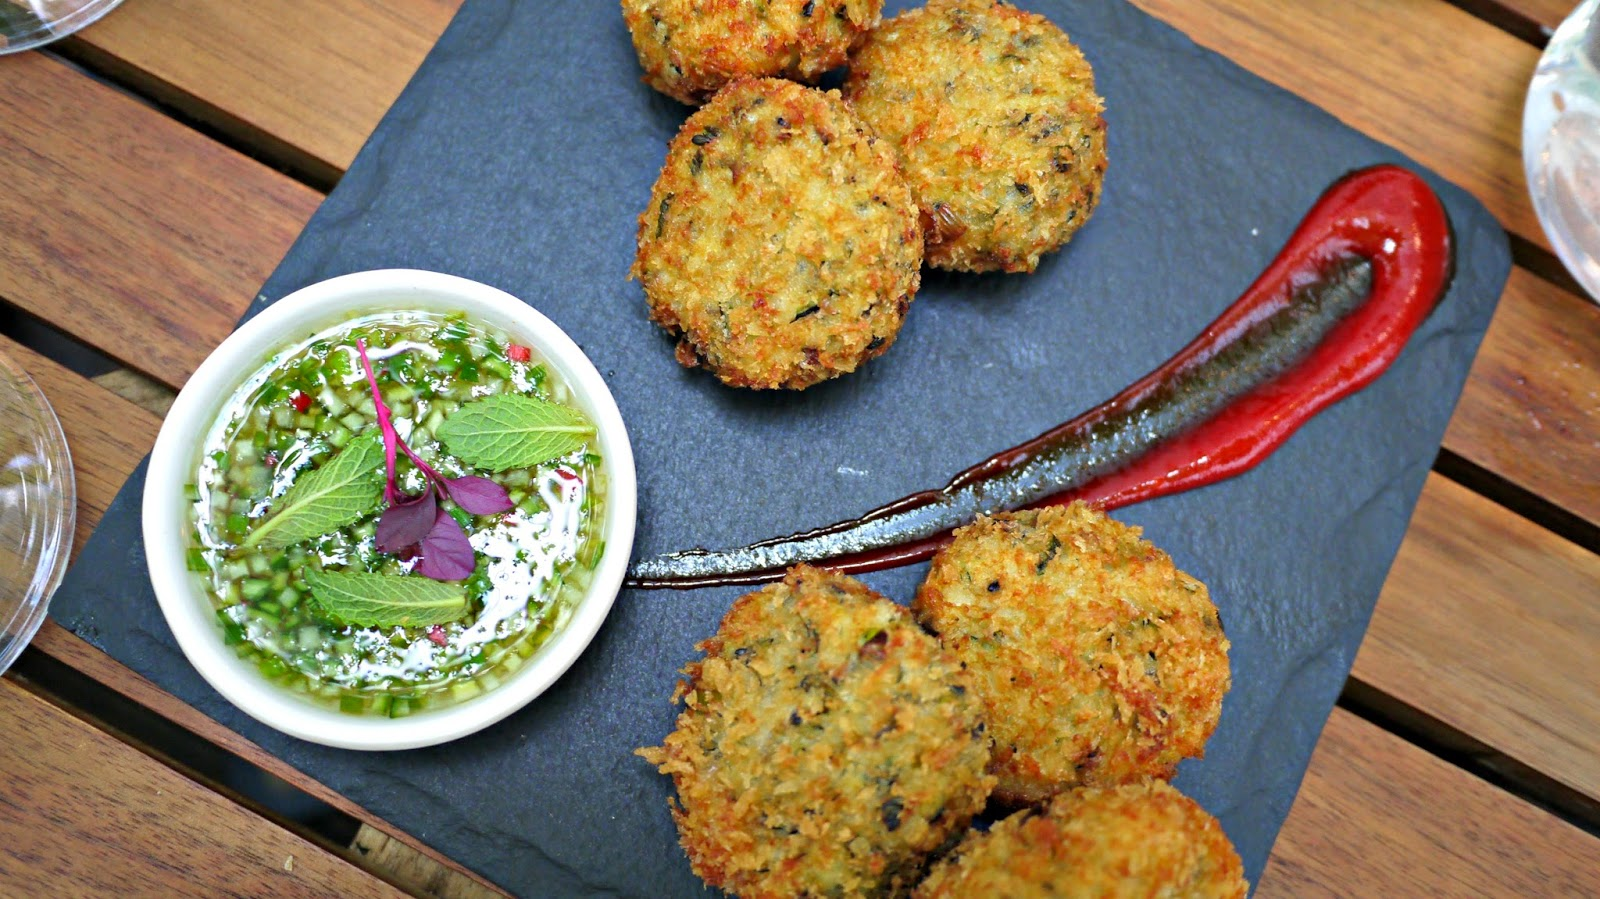 Mazi Courgette cakes with cucumber and mint dip